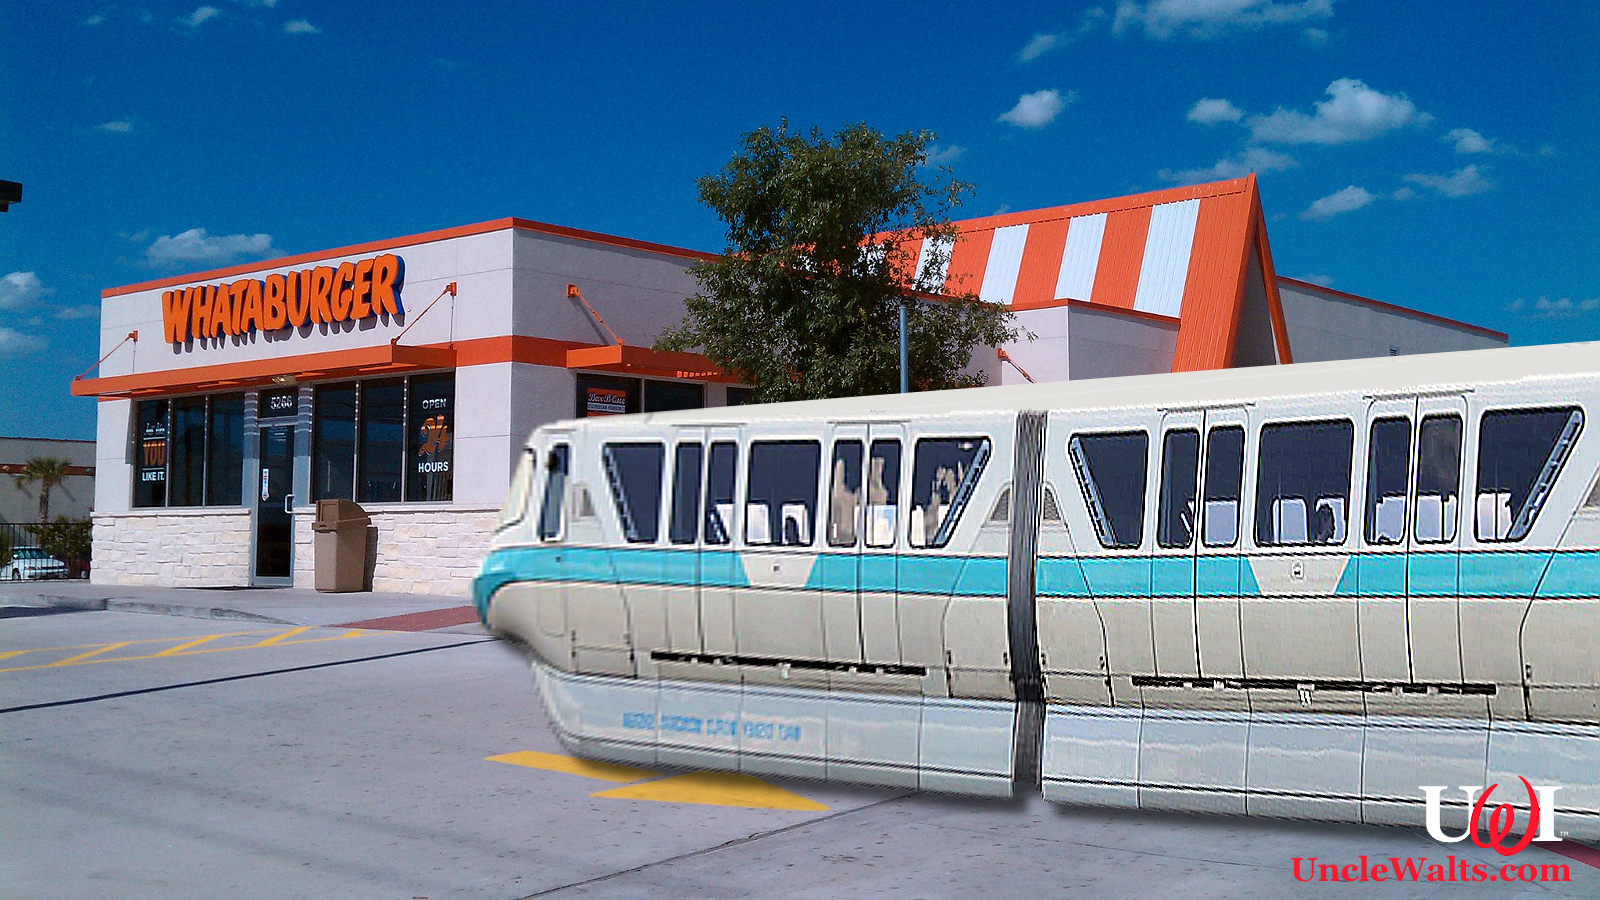 The monorail visits Whataburger. Photo by Jonesdr77 [CC BY-SA 3.0] via Wikimedia Commons.